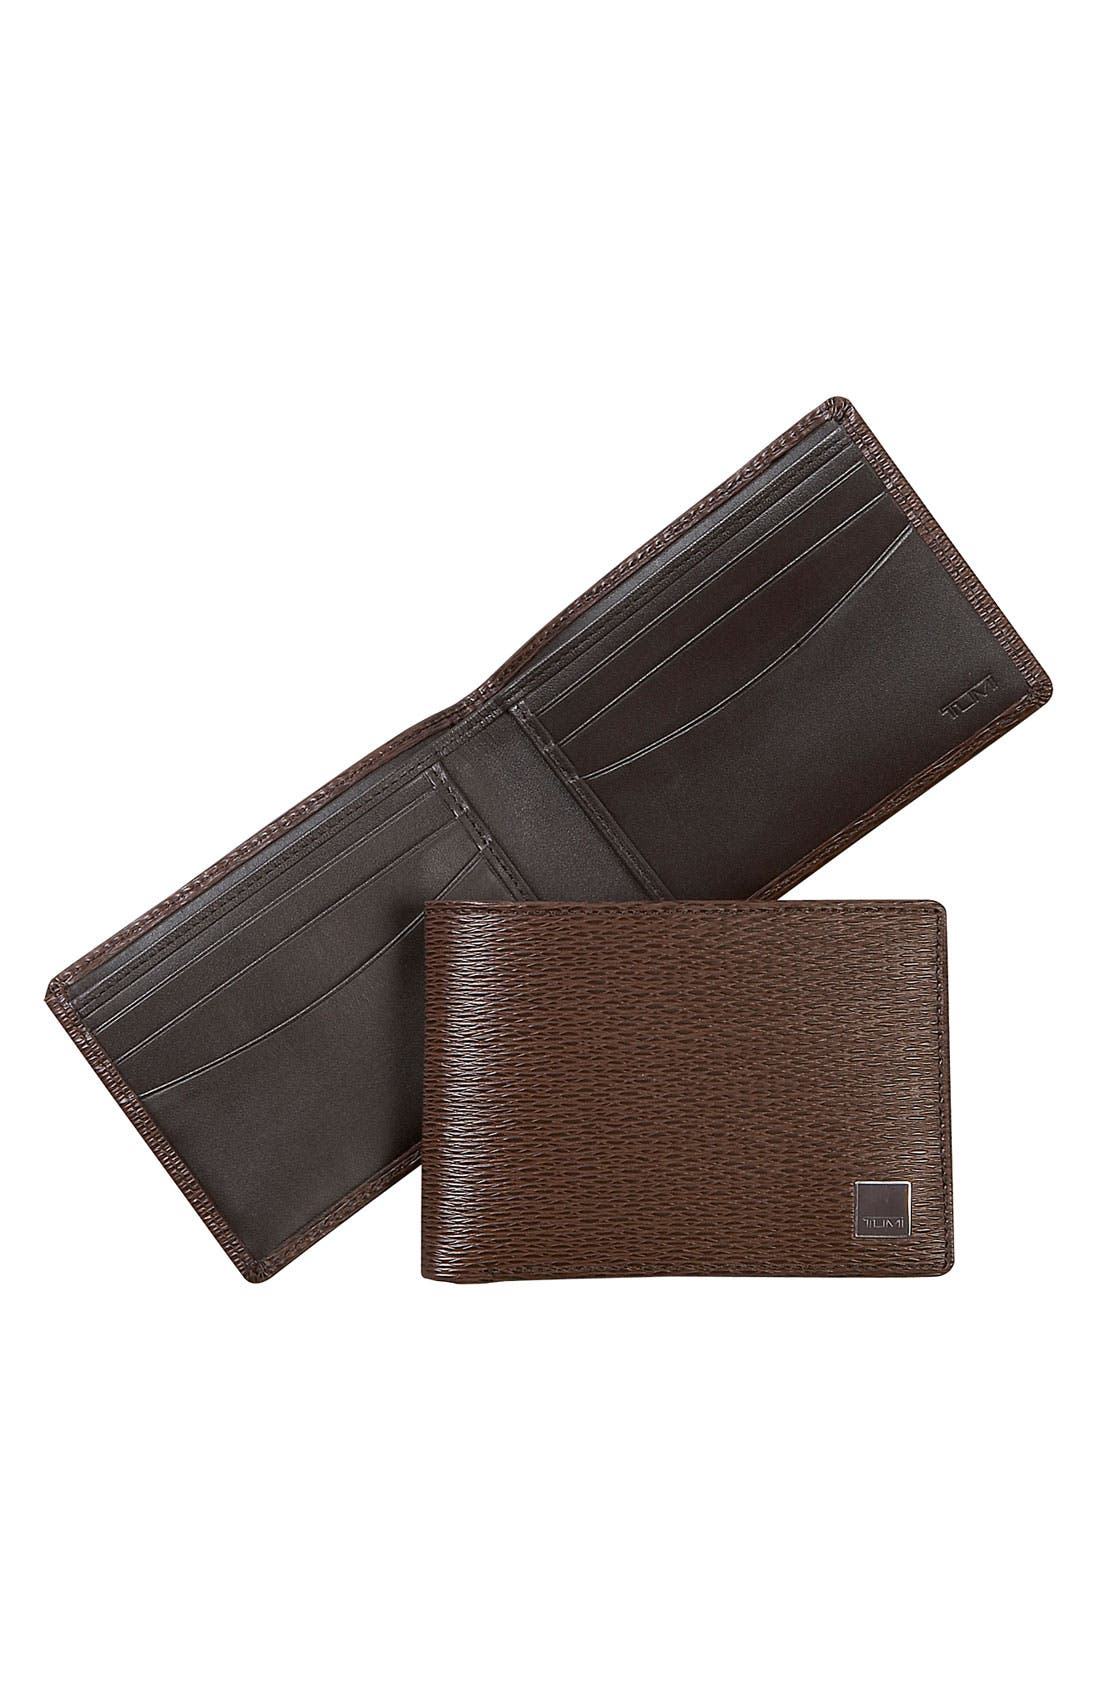 Main Image - Tumi 'Monaco' Slim Single Billfold Wallet